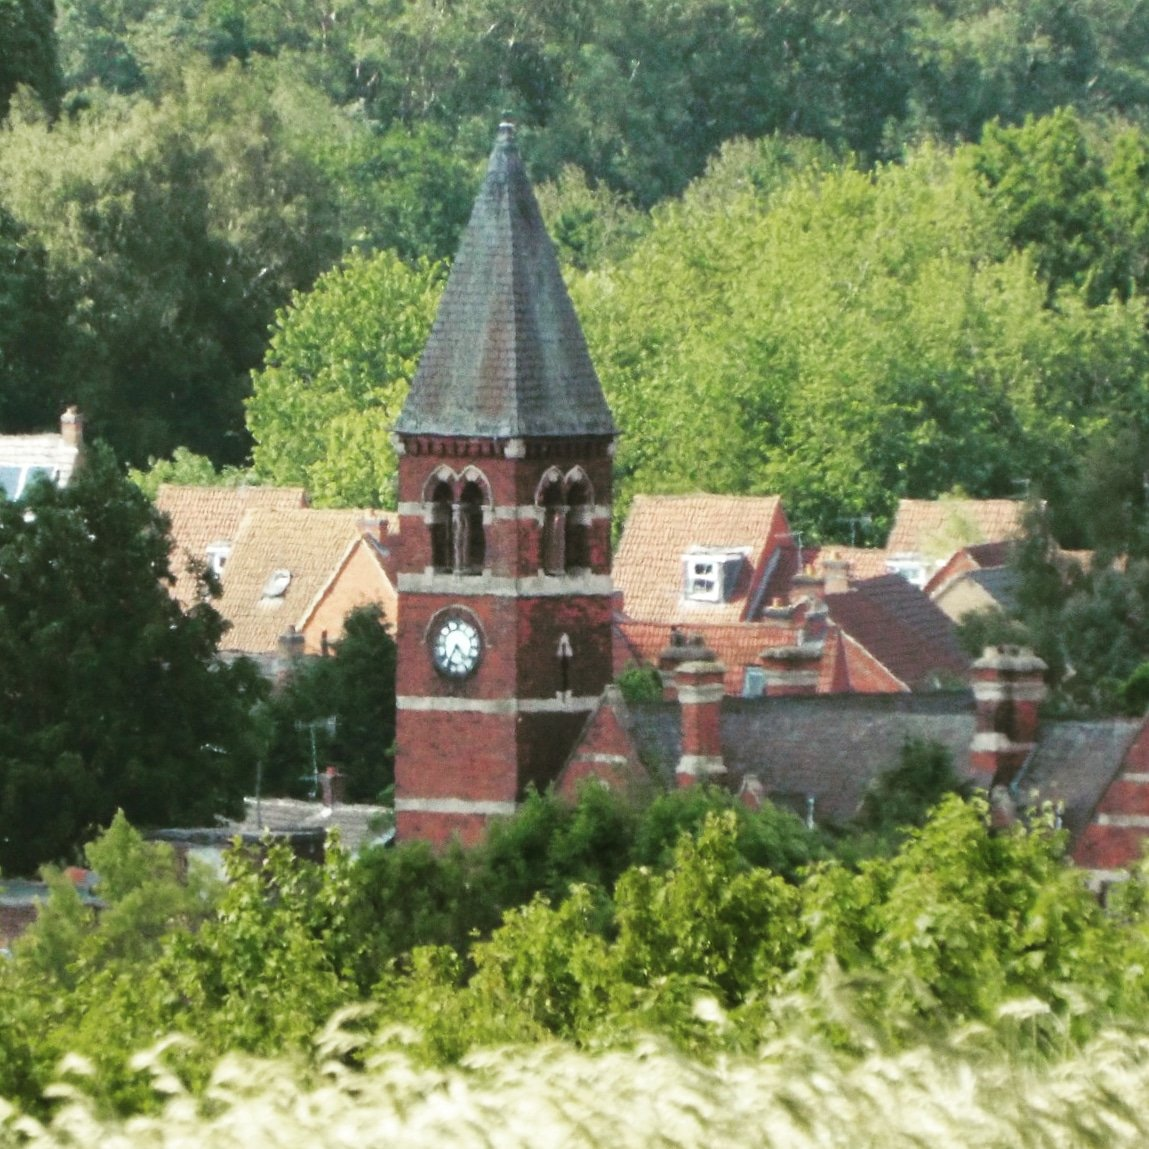 The clock tower in Bestwood village taken from Bestwood Country Park. #Nottingham #Nottinghamshire #lovenotts #bestwood pic.twitter.com/kOTYJFLl5h